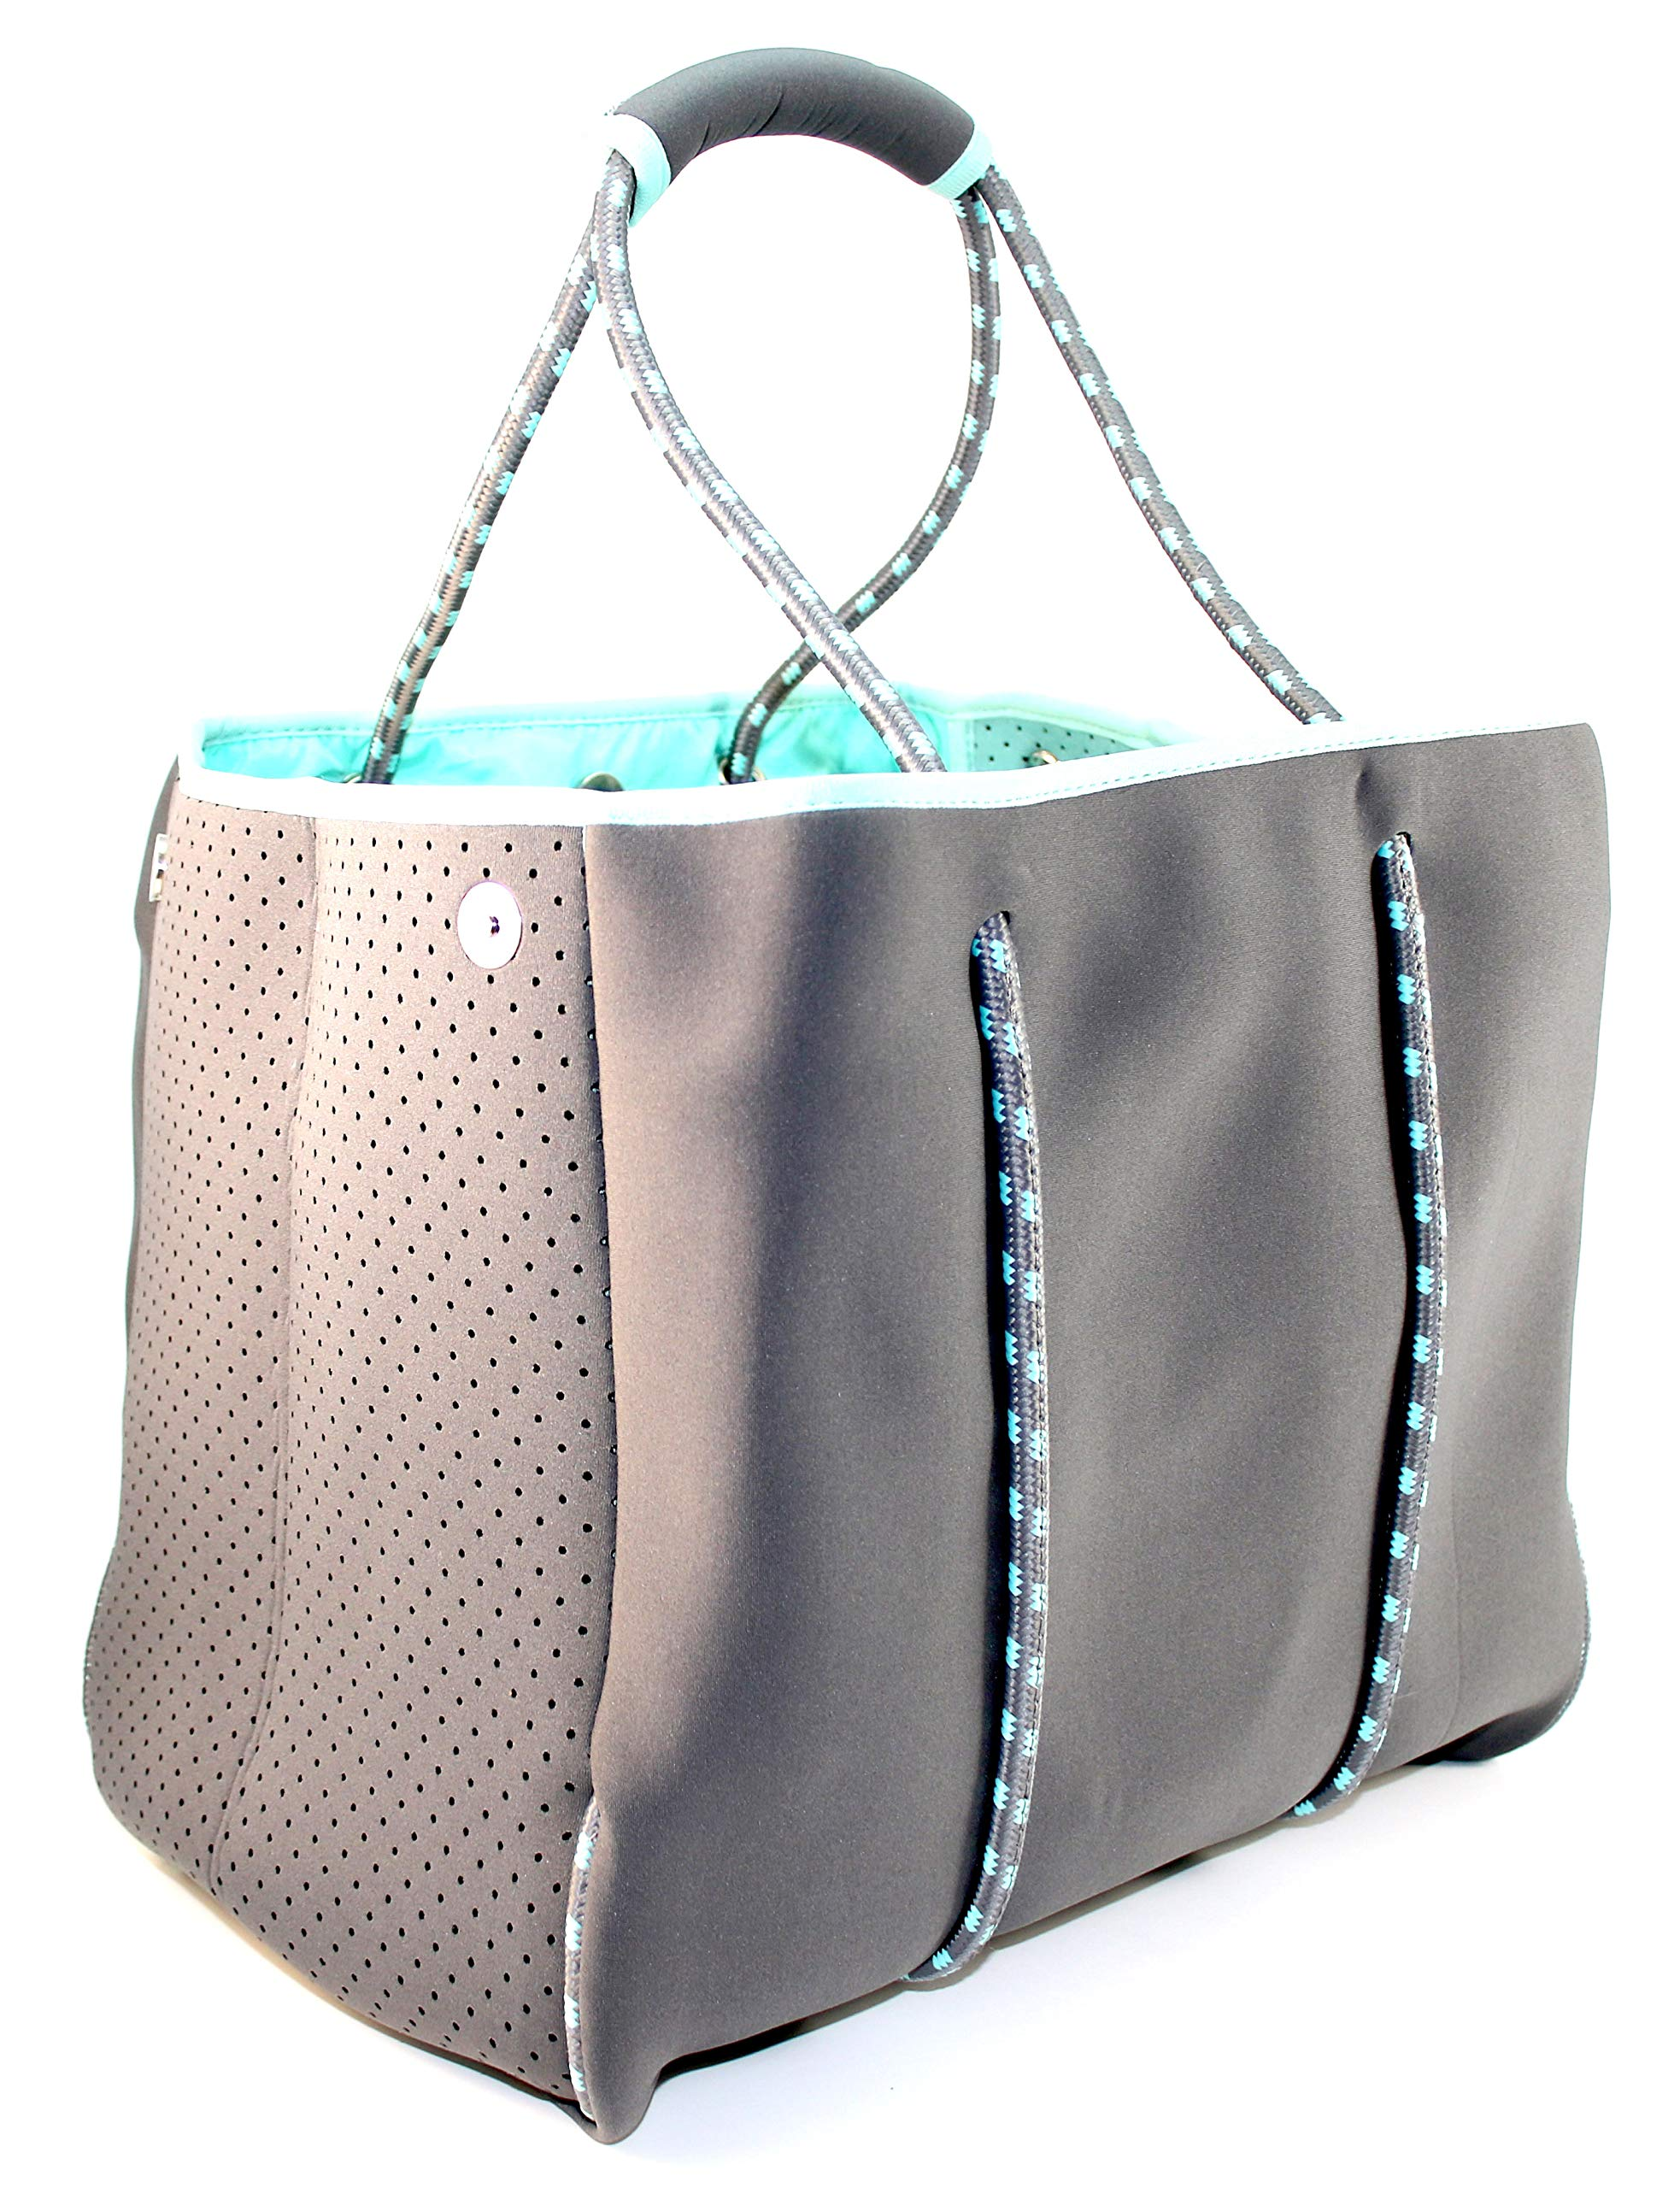 Nordic By Nature Large Designer Beach Bag Tote For Women, Men And Kids | Versatile Pool Bag With Zippered Pockets | Room For Towels, Toys And Lotion | For The Boat, Beach or Pool (Grey/Turquoise) by Nordic By Nature